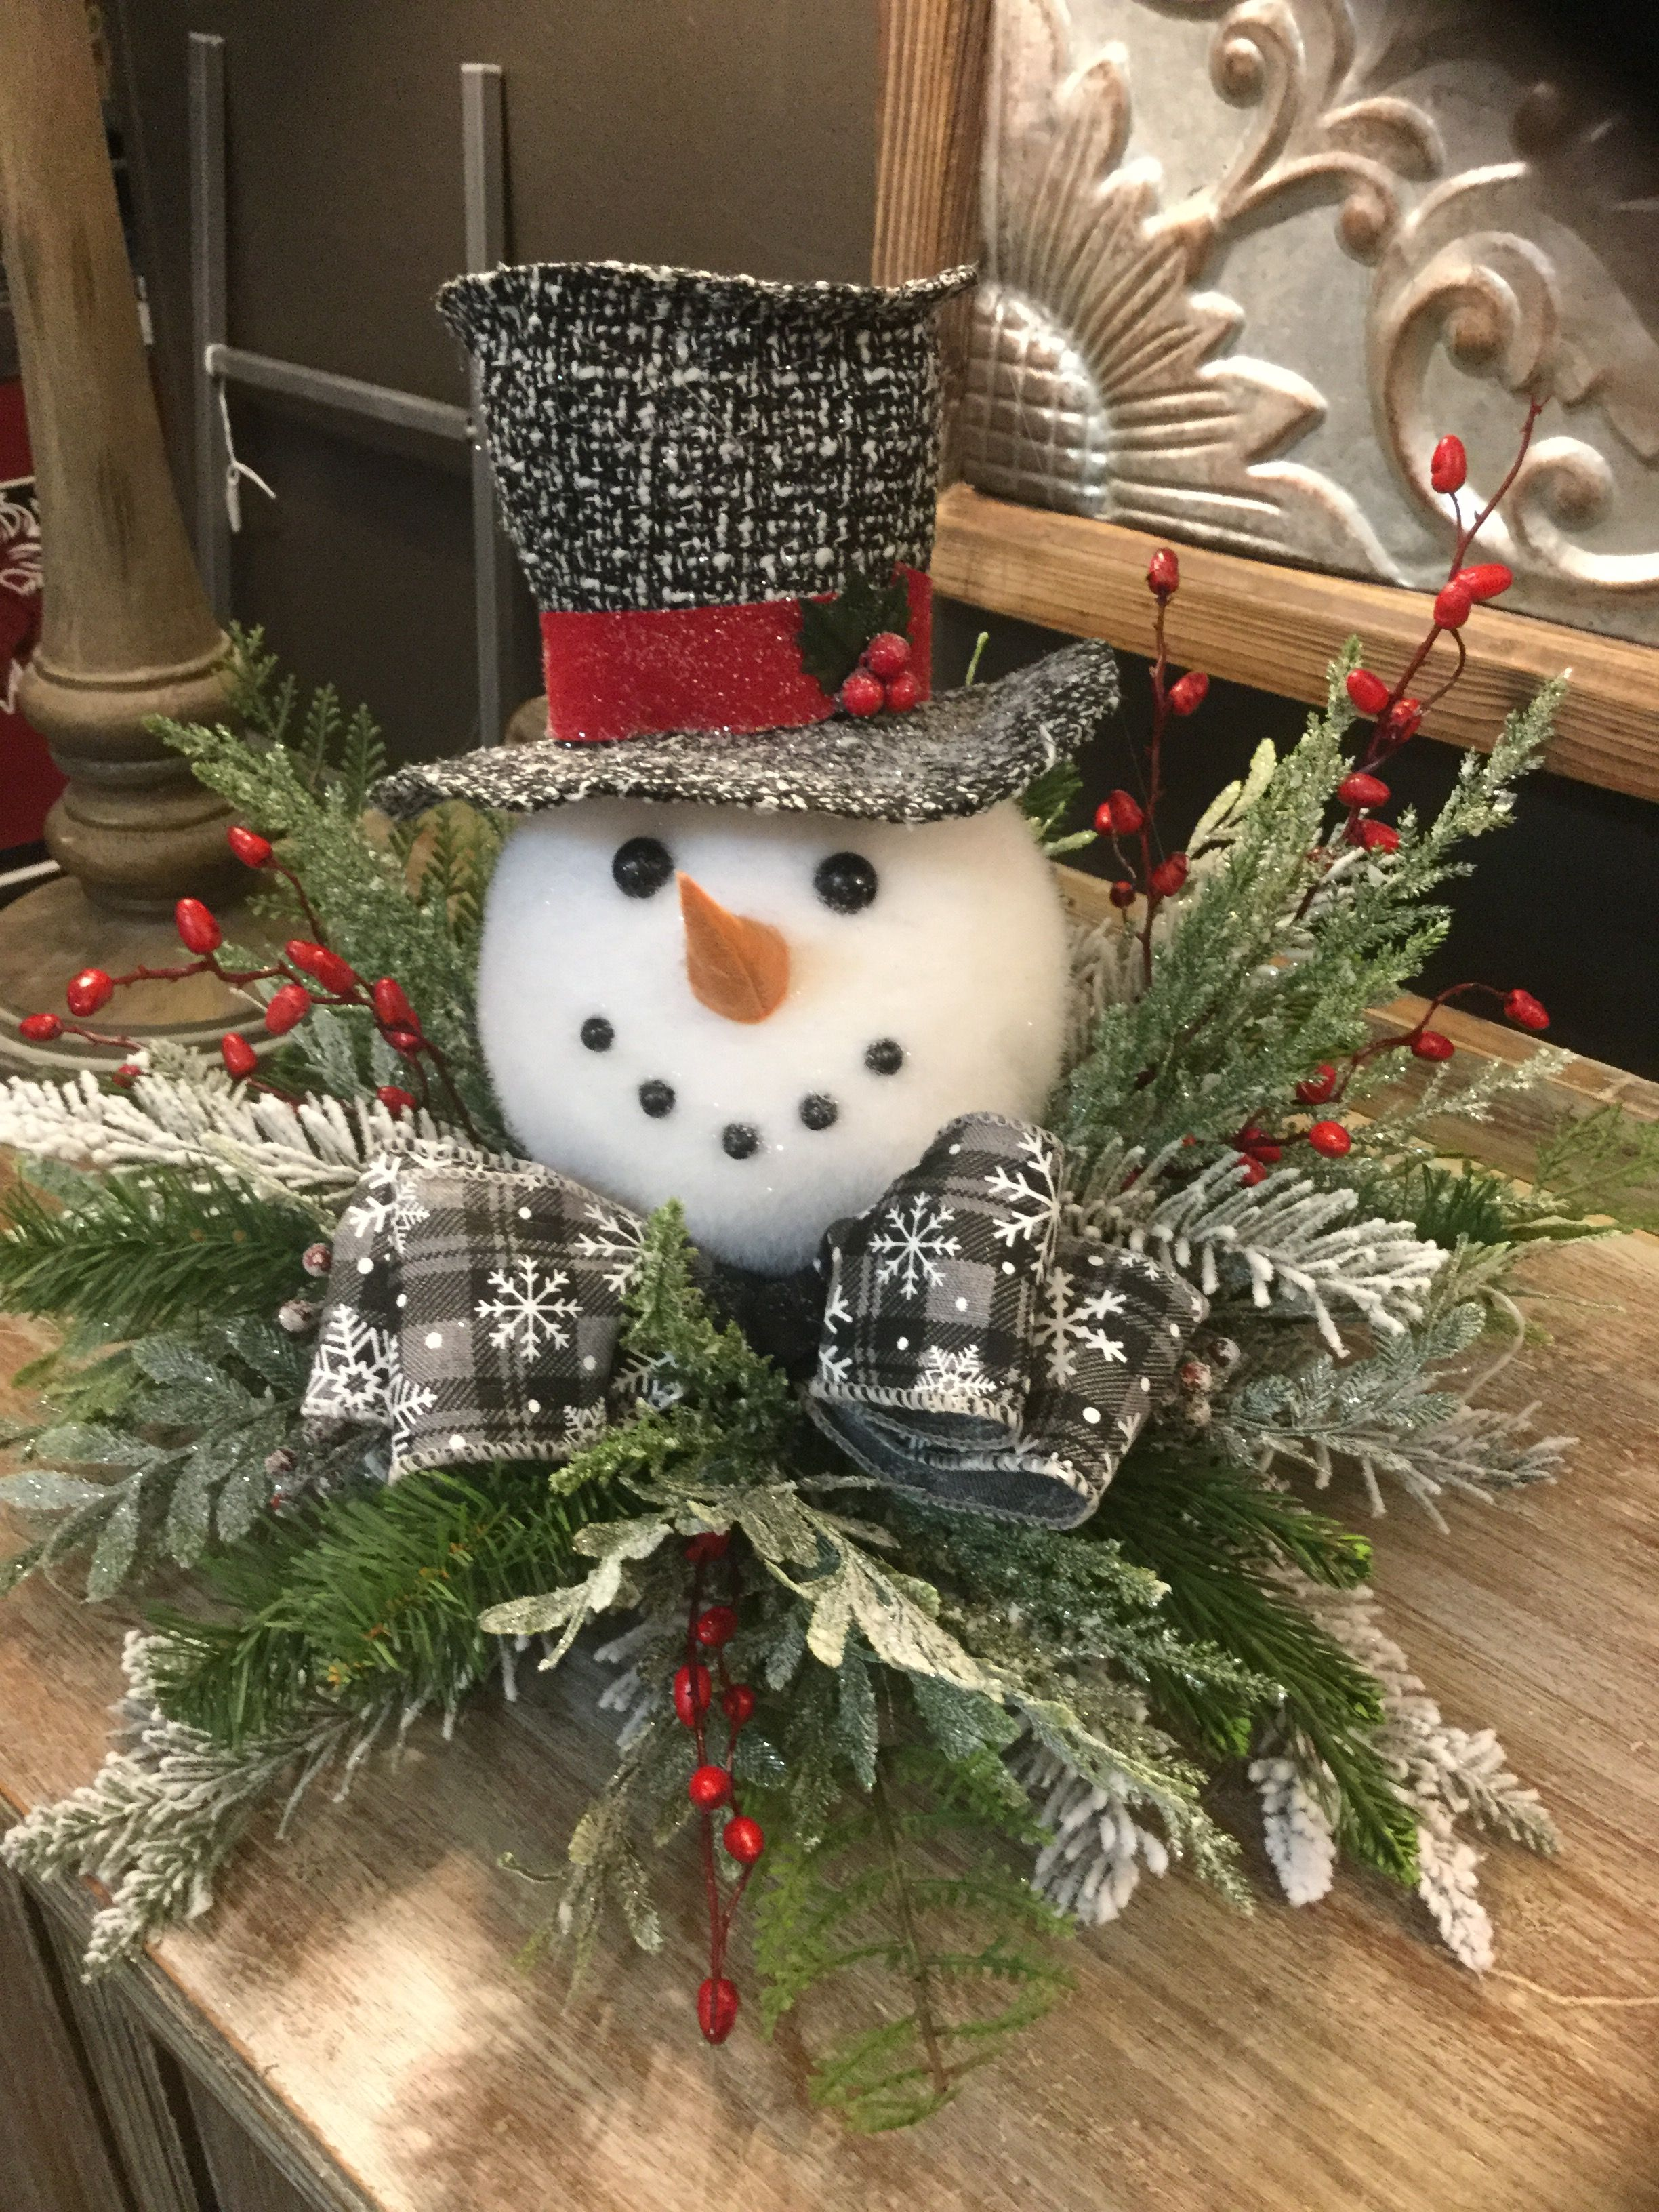 Window decor for christmas  more more  me  pinterest  snowman christmas decor and holidays